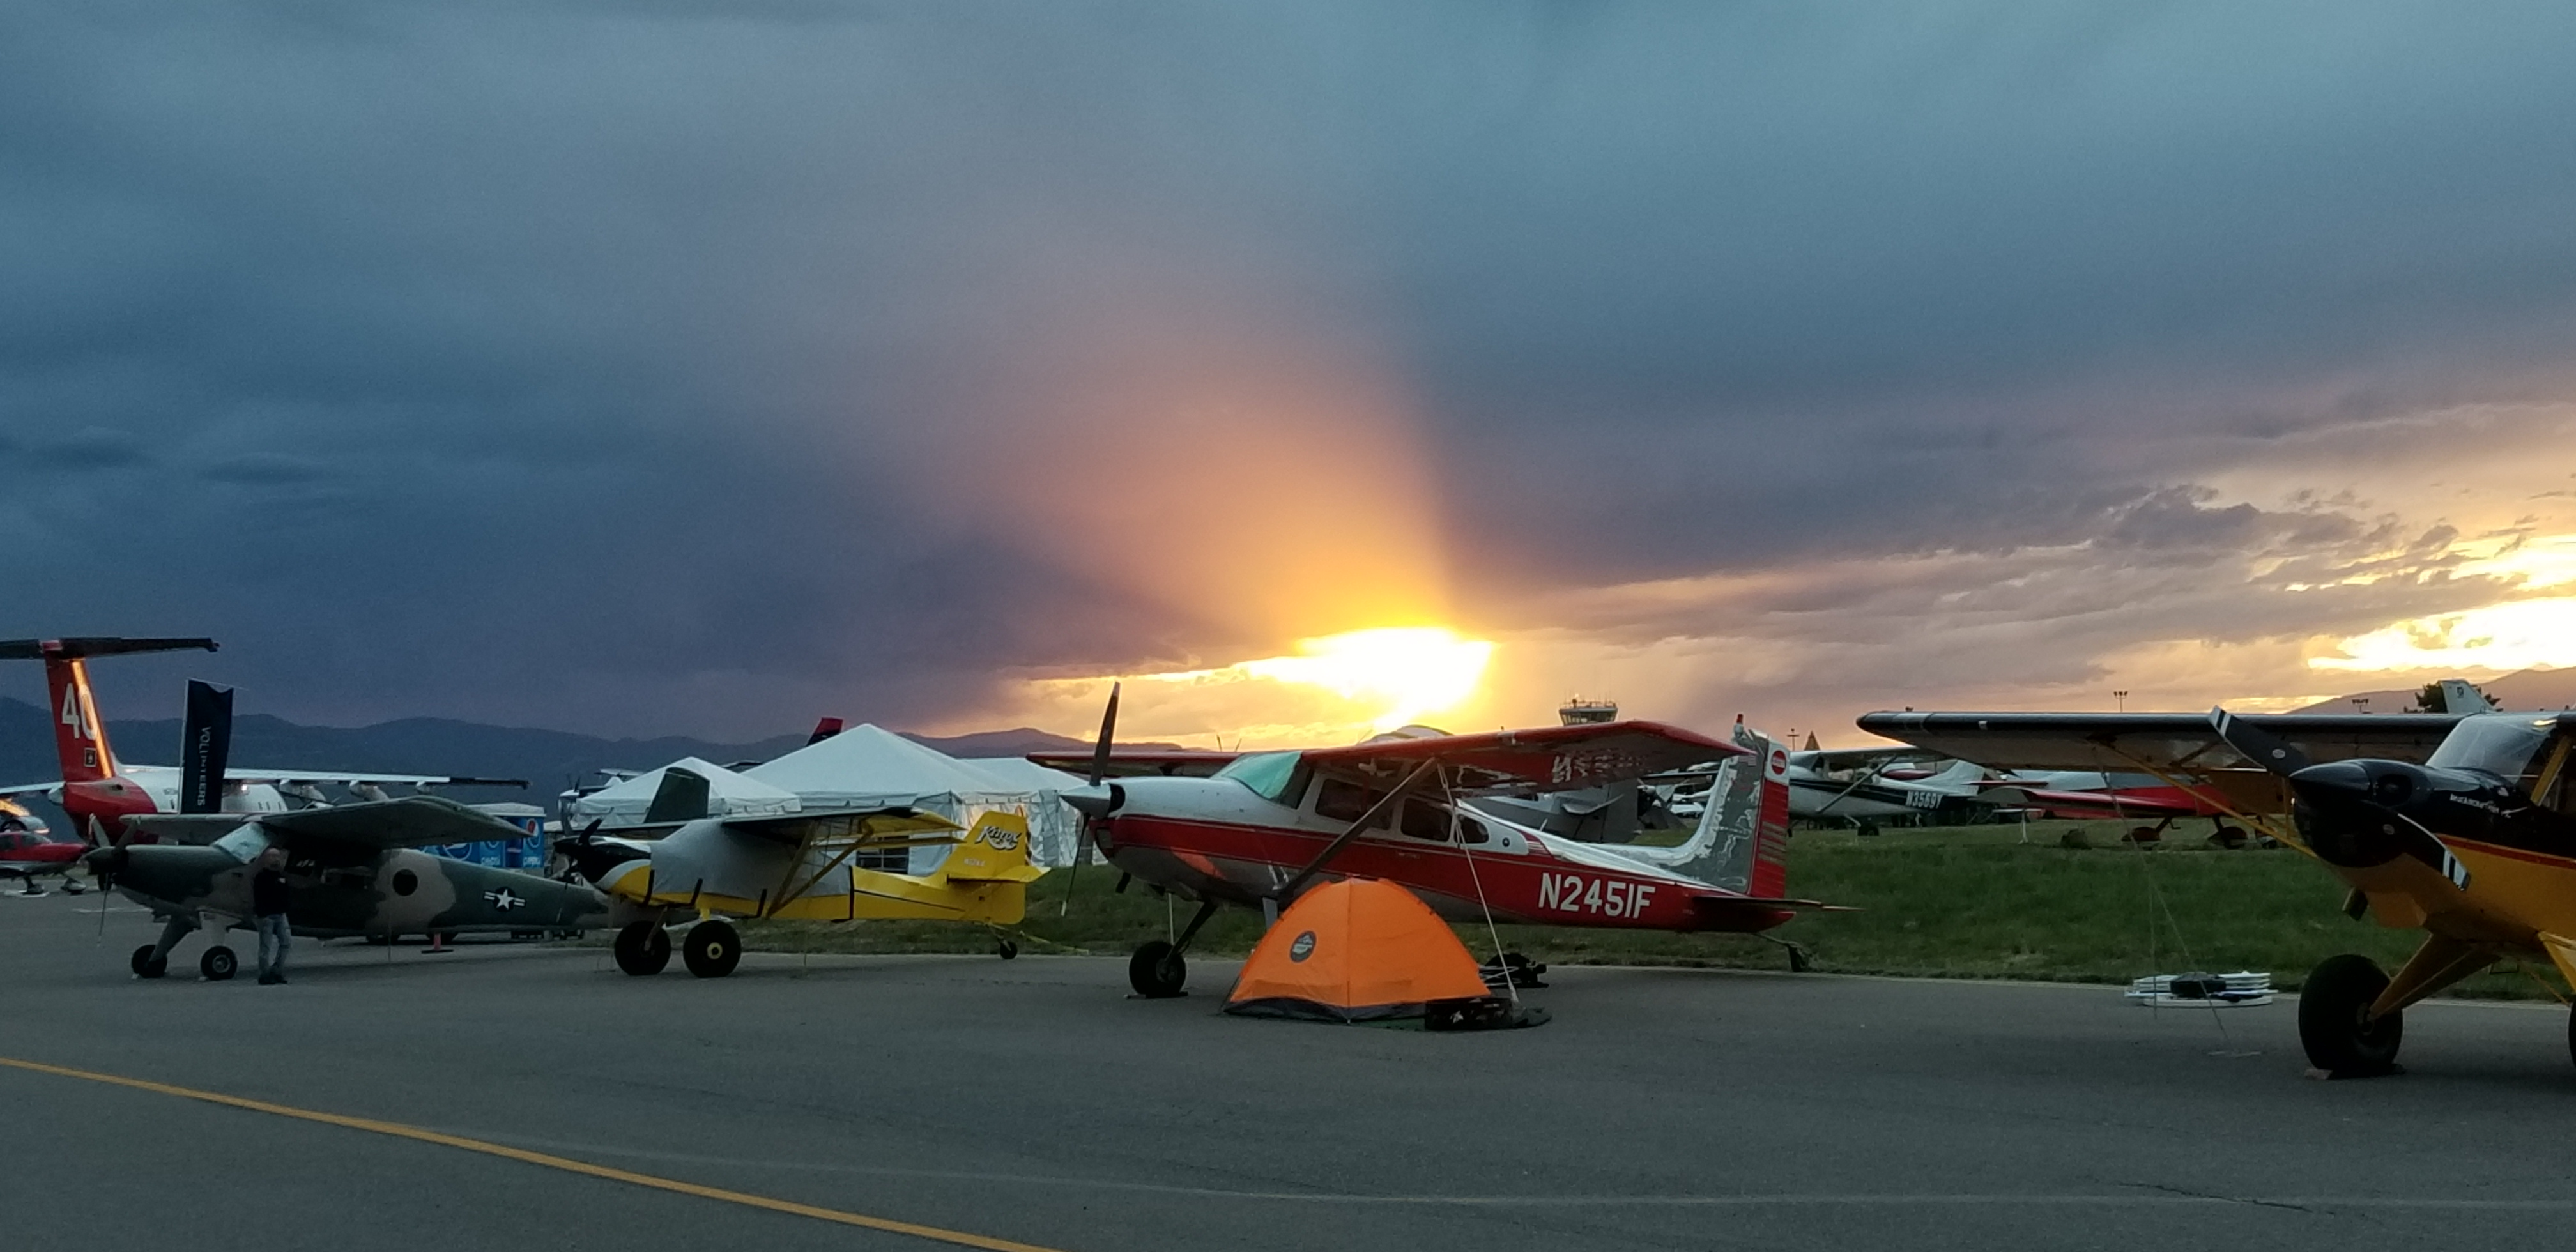 A setting sun illuminates aircraft campers during the AOPA Fly-In at Missoula International Airport, in Missoula, Montana, June 15, 2018. Photo by Carol Dodds.